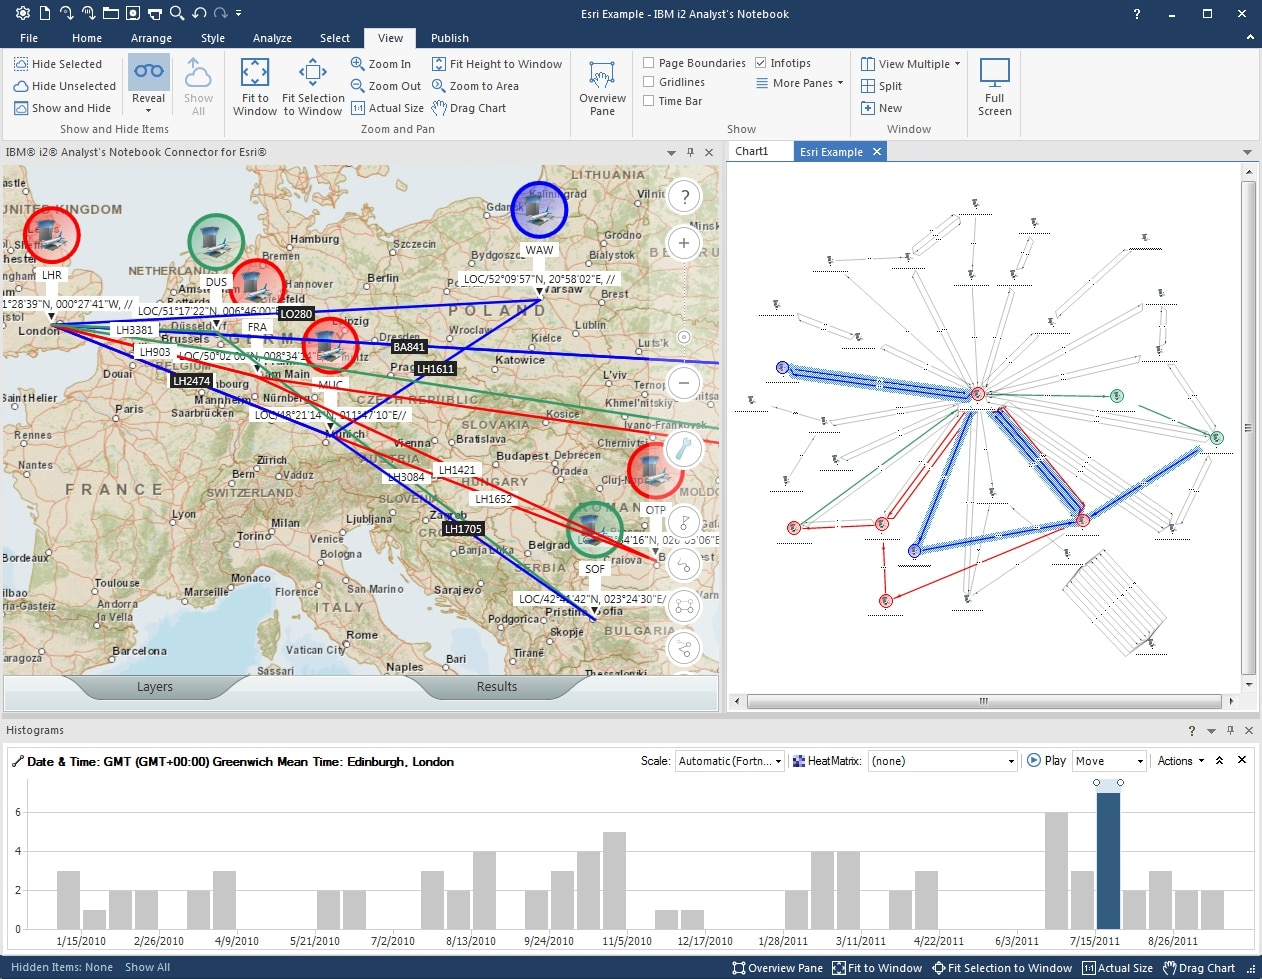 Screen shot of temporal and geospatial views available in IBM i2 Analyst's Notebook